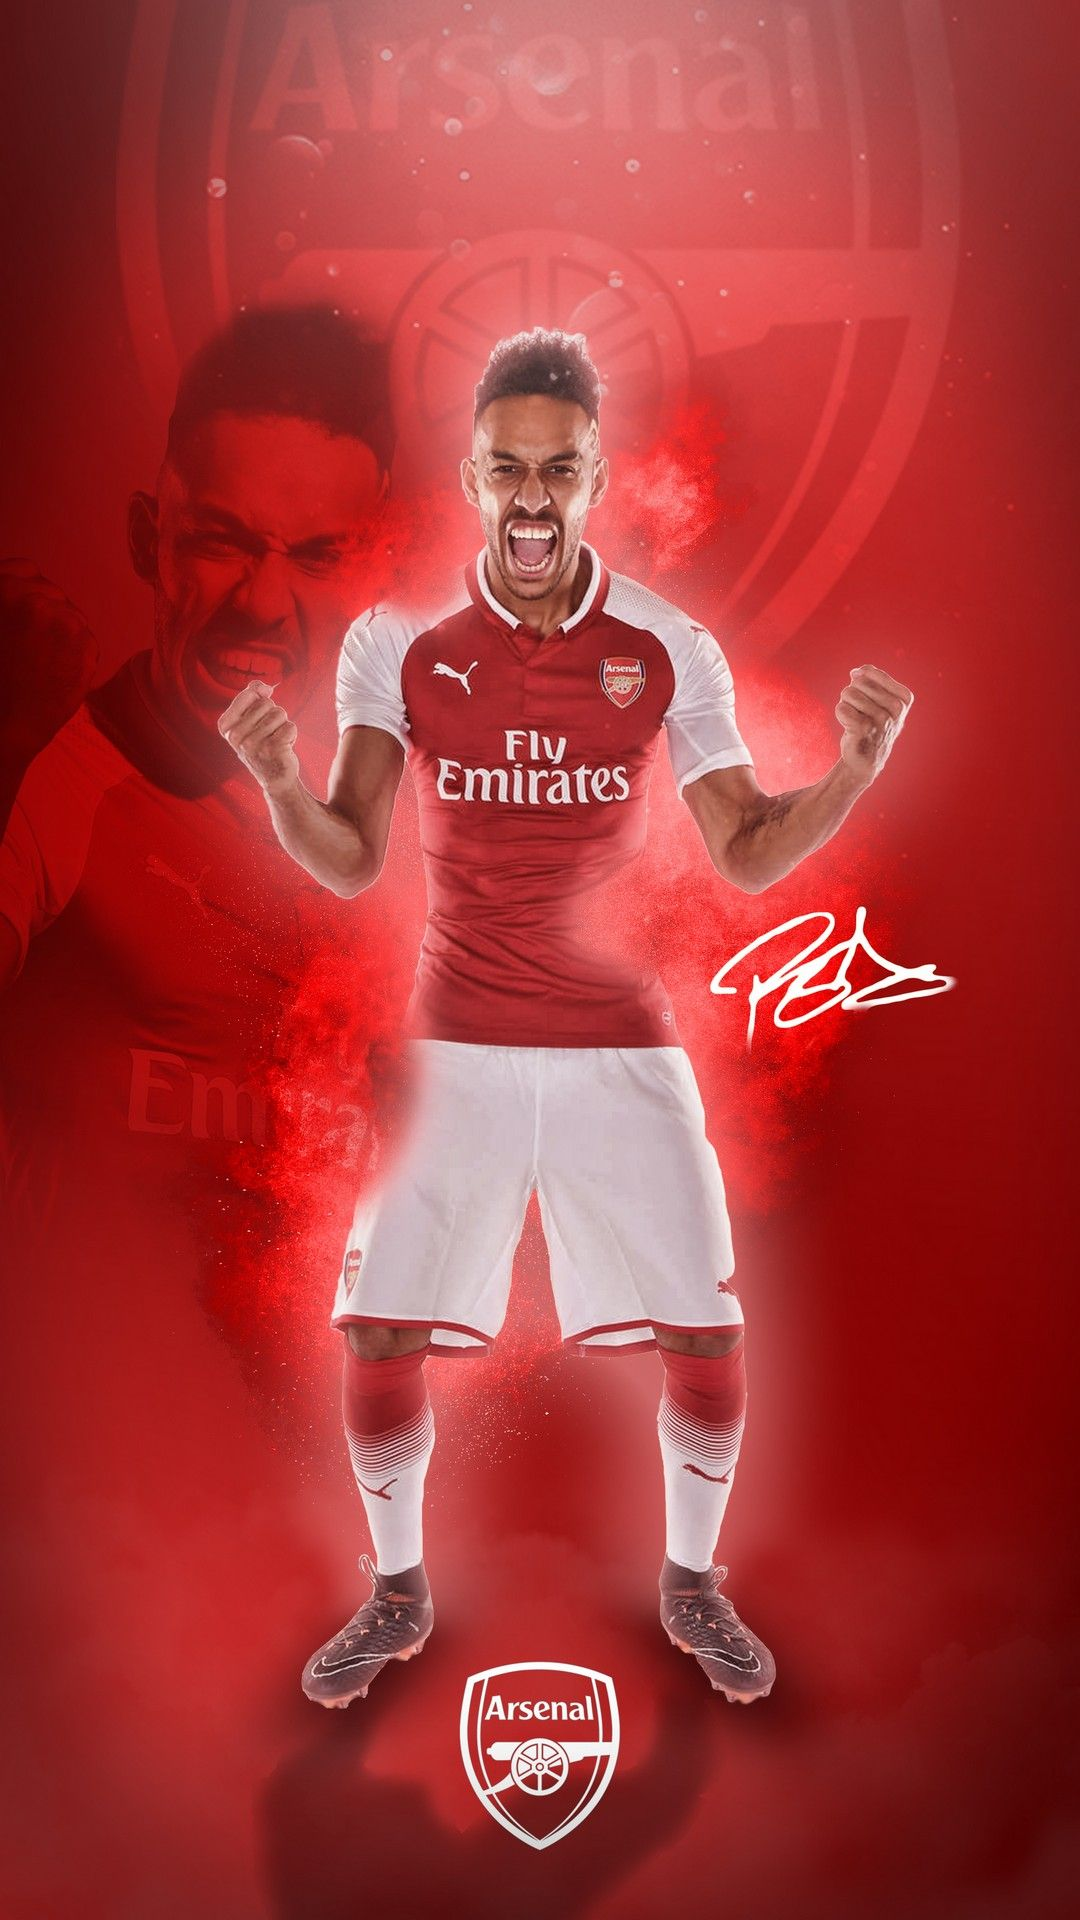 Aubameyang Arsenal Players Android Wallpaper   Best Android 1080x1920